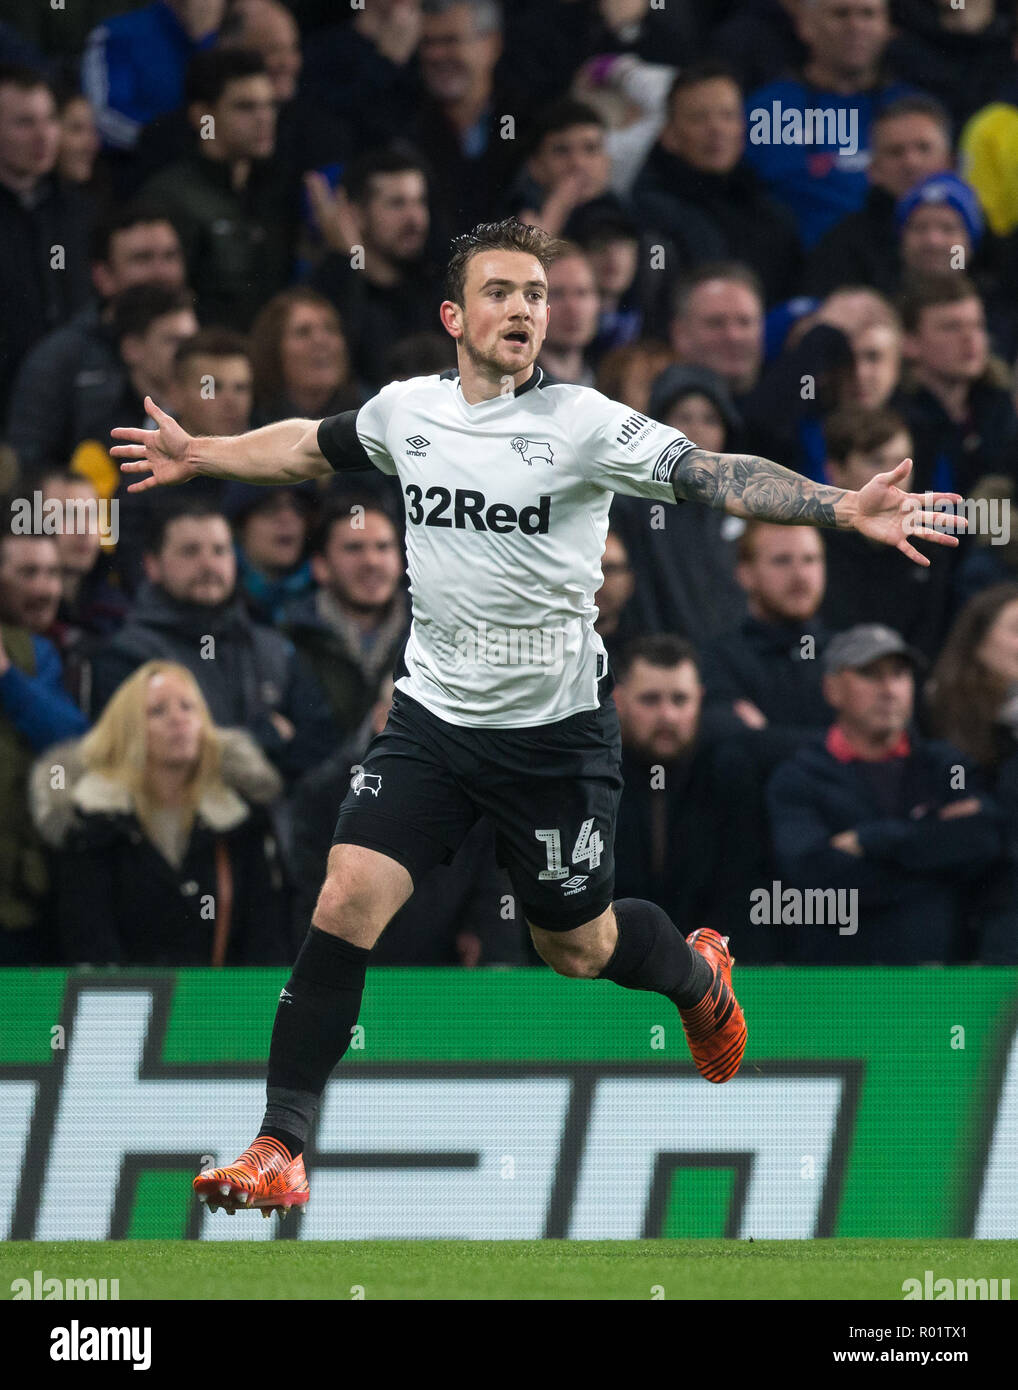 London, UK. 31st October, 2018. Jack Marriott of Derby County celebrates scoring a goal during the Carabao Cup round of 16 match between Chelsea and Derby County at Stamford Bridge, London, England on 31 October 2018. Photo by Andy Rowland./Alamy Live News Stock Photo